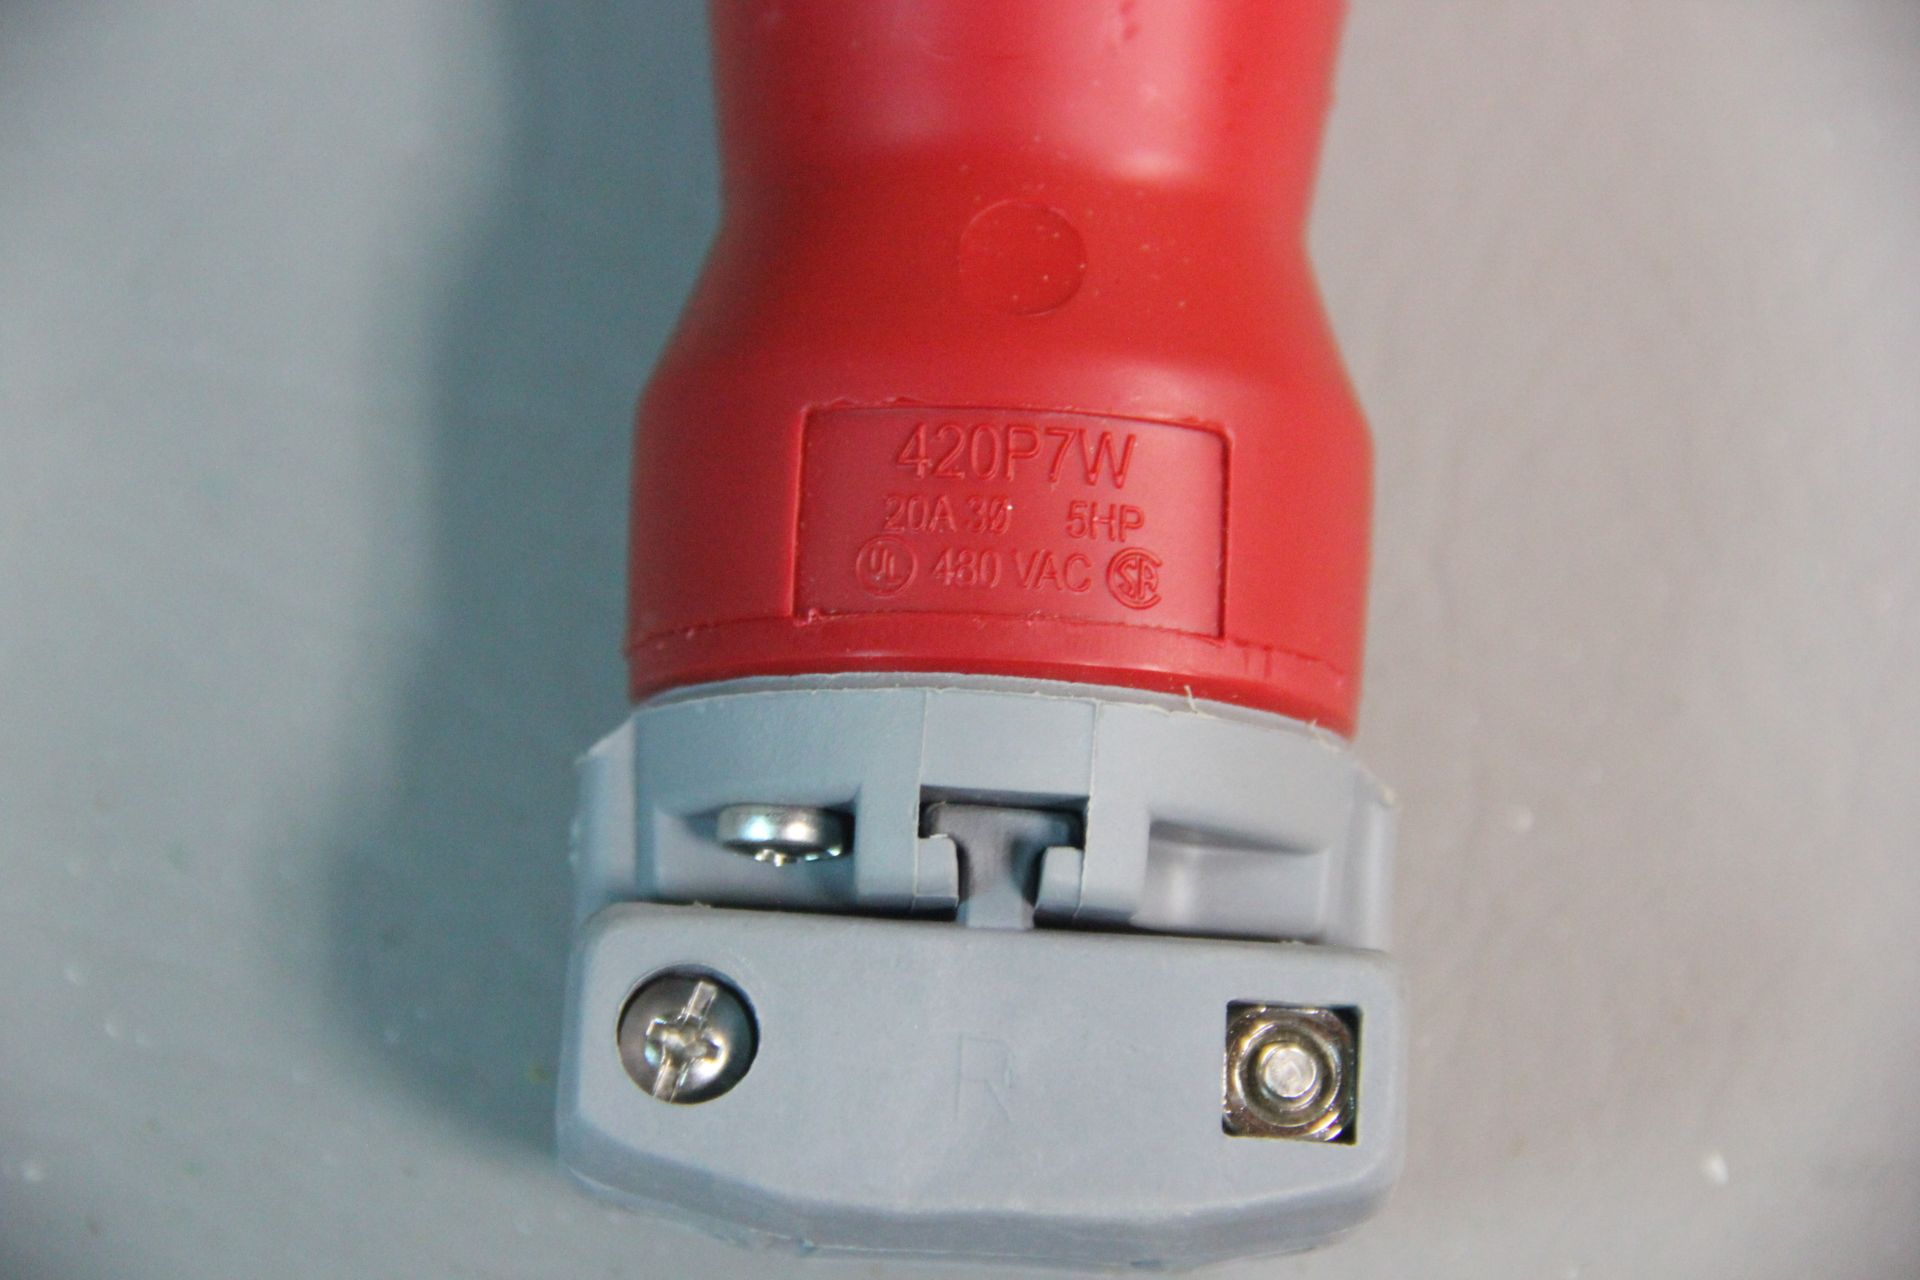 NEW HUBBELL PIN & SLEEVE WATERTIGHT ELECTRICAL PLUG - Image 4 of 4